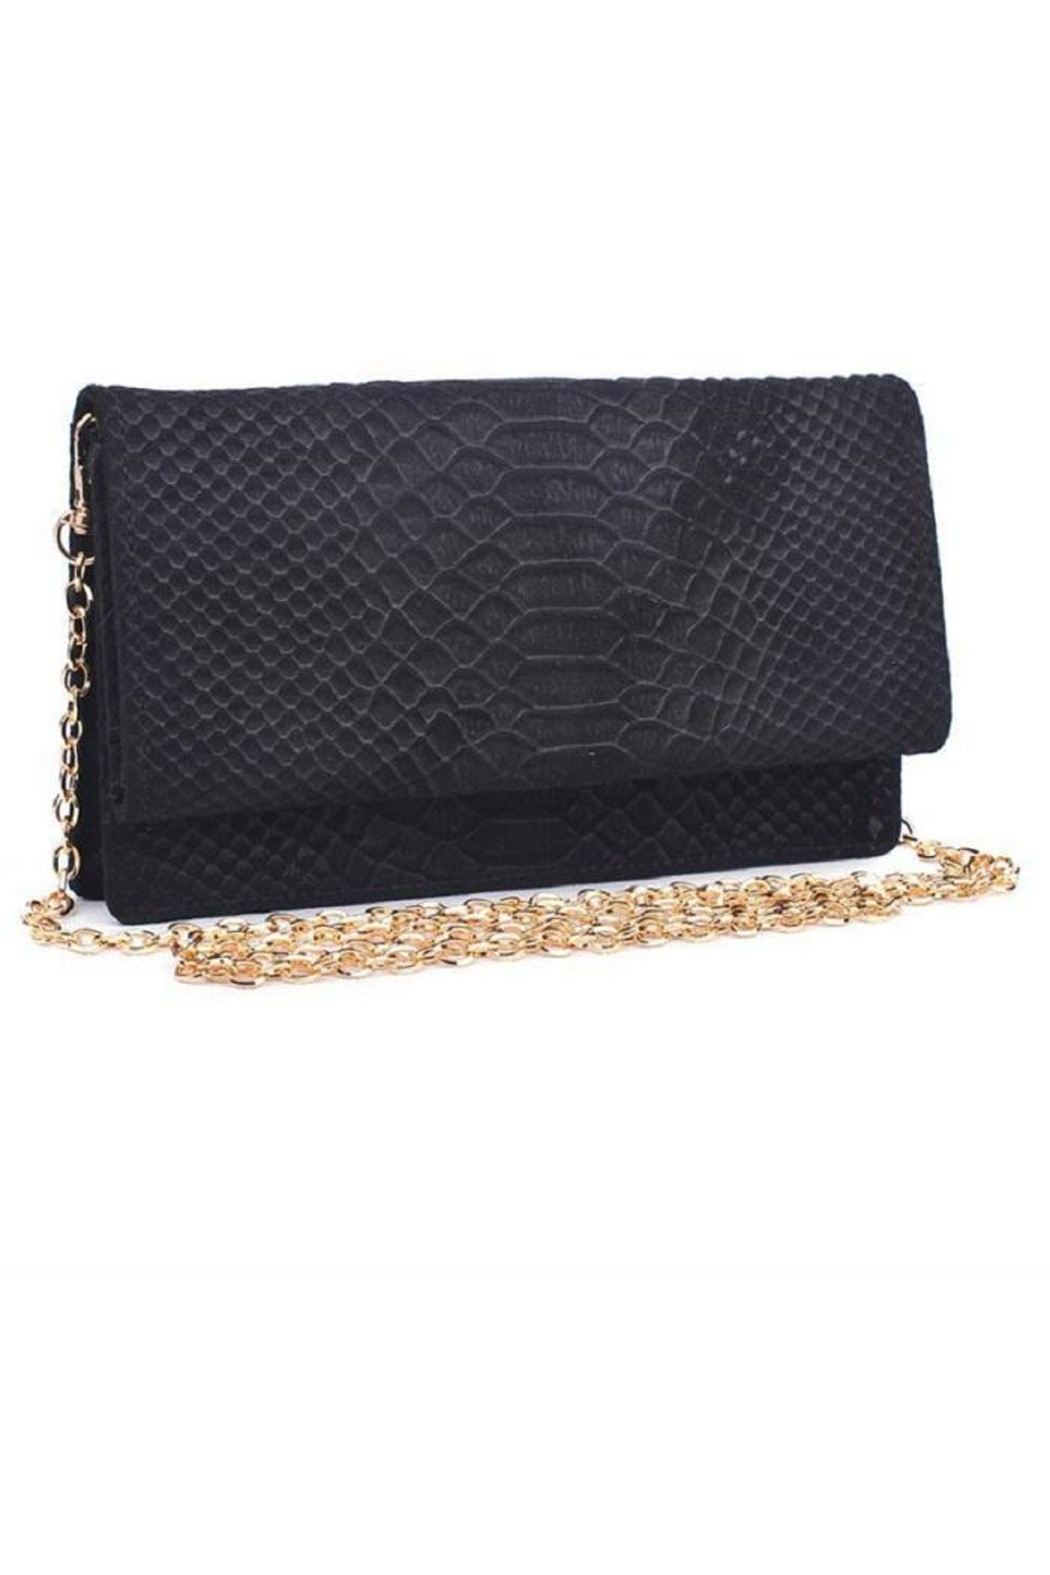 Urban Expressions The Jolie Wallet Clutch - Front Cropped Image